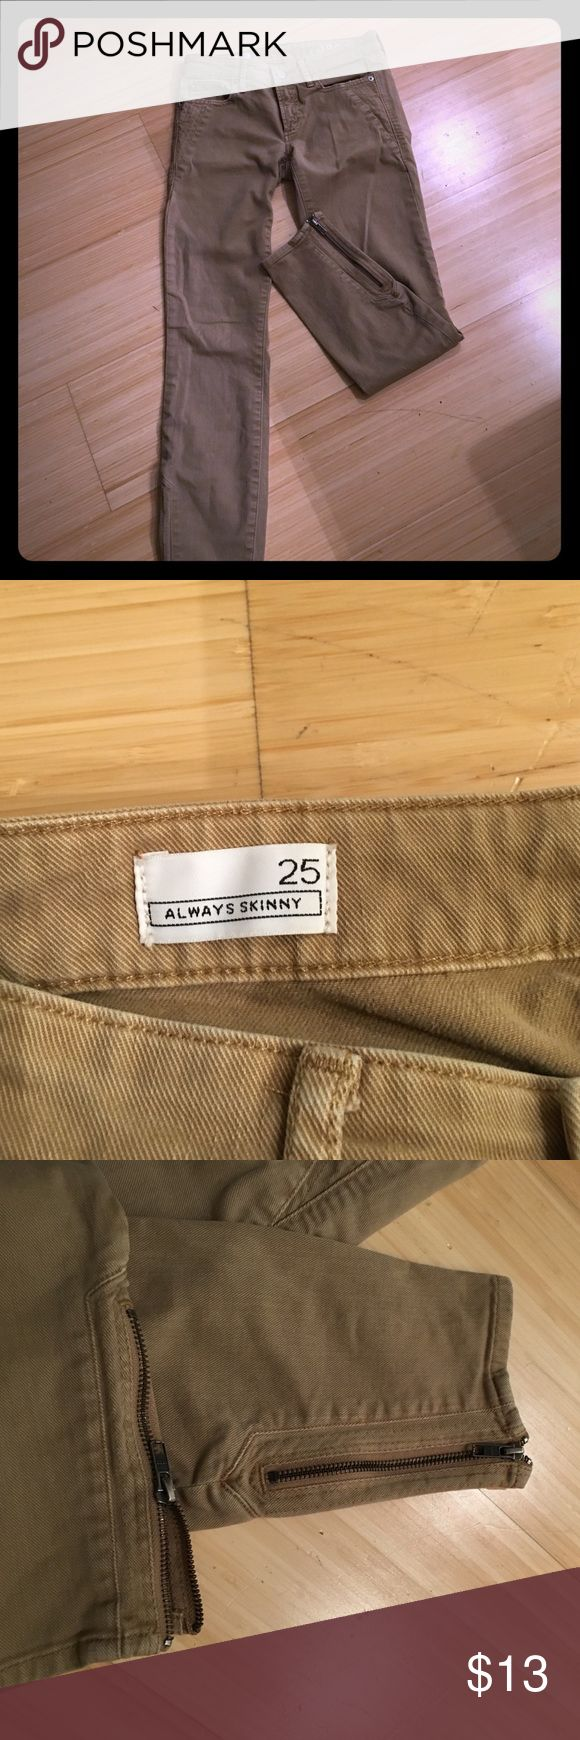 Adorable Skinny Dark Khaki Jeans/Pants Size 25, Gap, Skinny khaki pants, Denim fabric, zipper ankles, adorable pants. perfect for fall/winter, fit is adorable. I have these pants in almost every color! Excellent condition - worn only 1x - needed a larger size *** Not Banana Republic just used for advertising ^** Banana Republic Pants Skinny